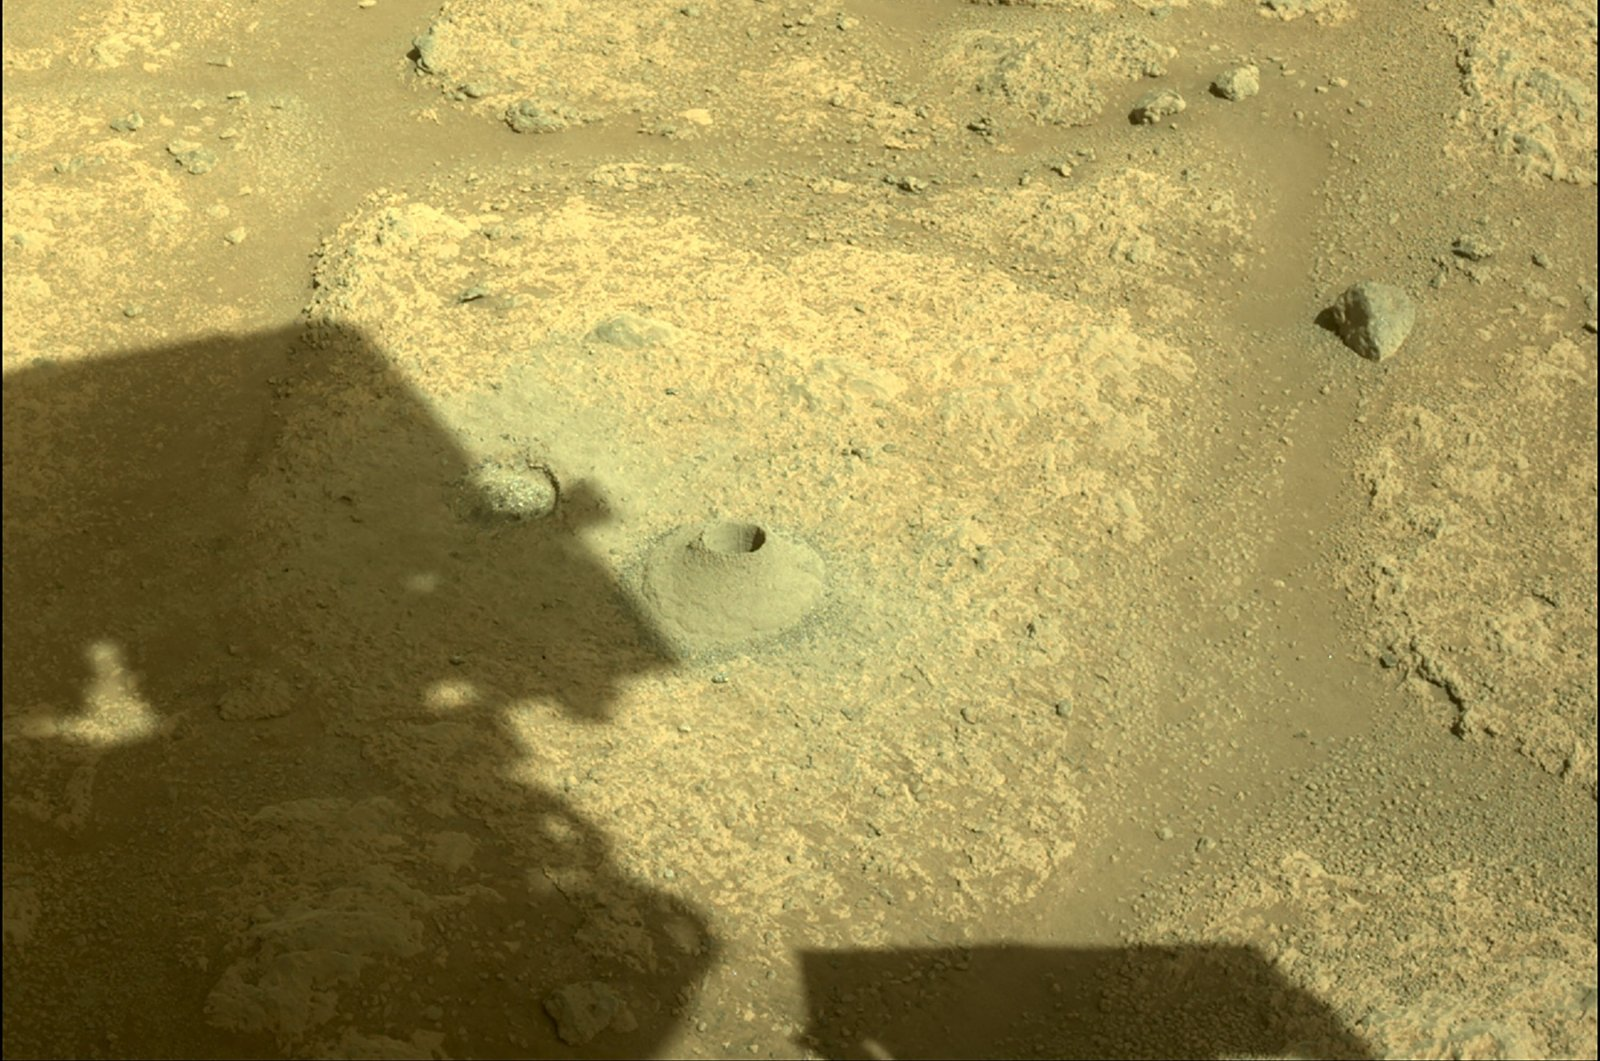 The shadow of the Perseverance Mars rover is cast next to its first hole drilled in a rock, Aug. 6, 2021. (AFP Photo/NASA/JPL-Caltech)